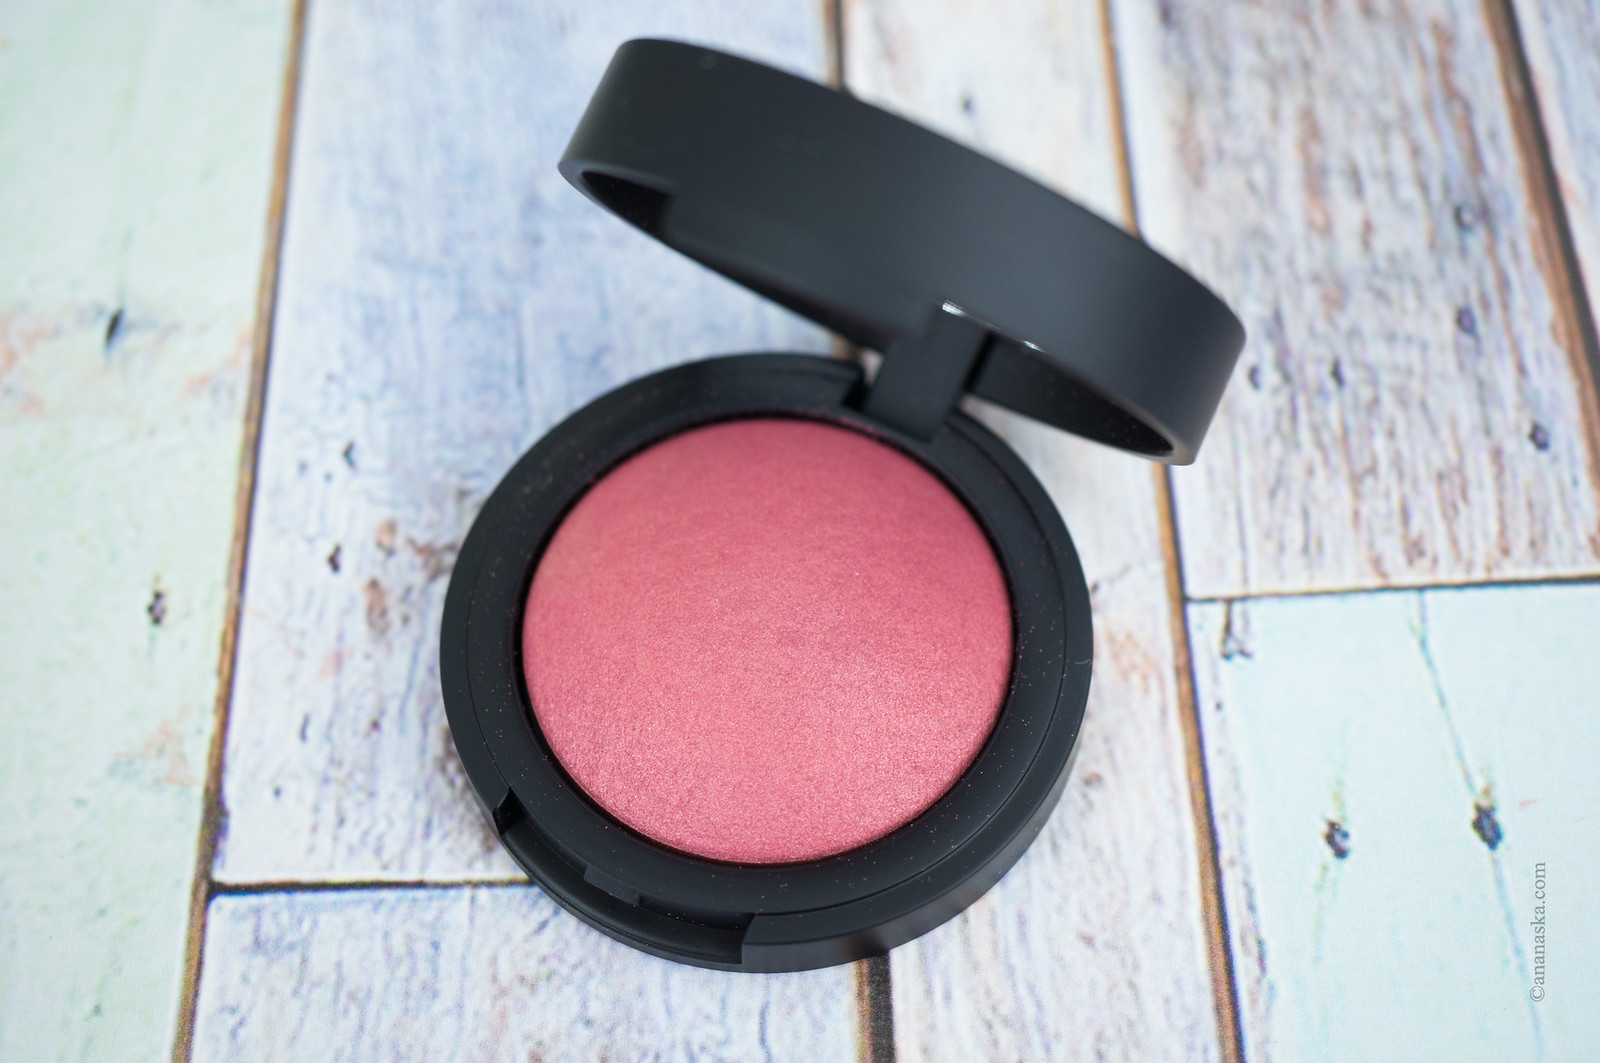 WYCON Cosmetics Candy Blush 03 Warm Cheeks